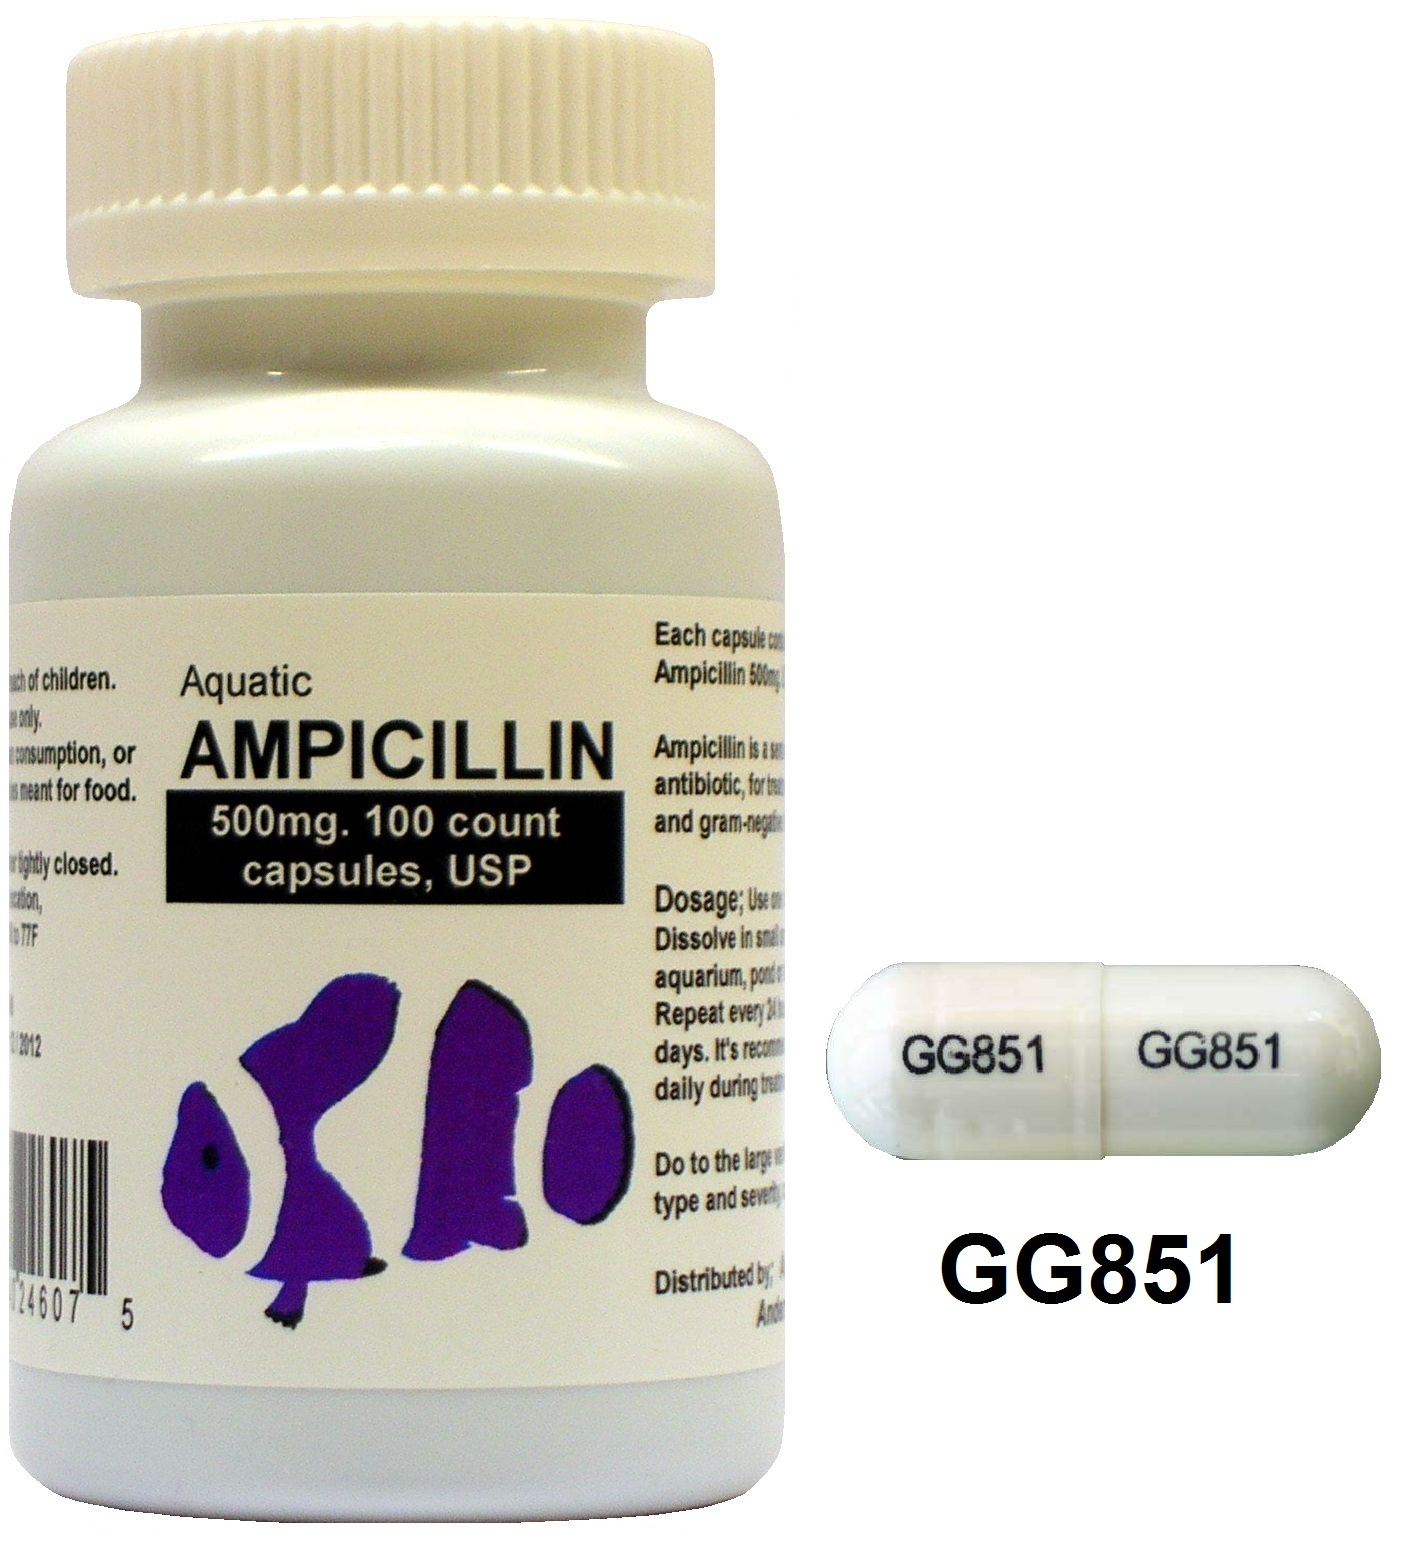 Ampicillin 500mg While Pregnant